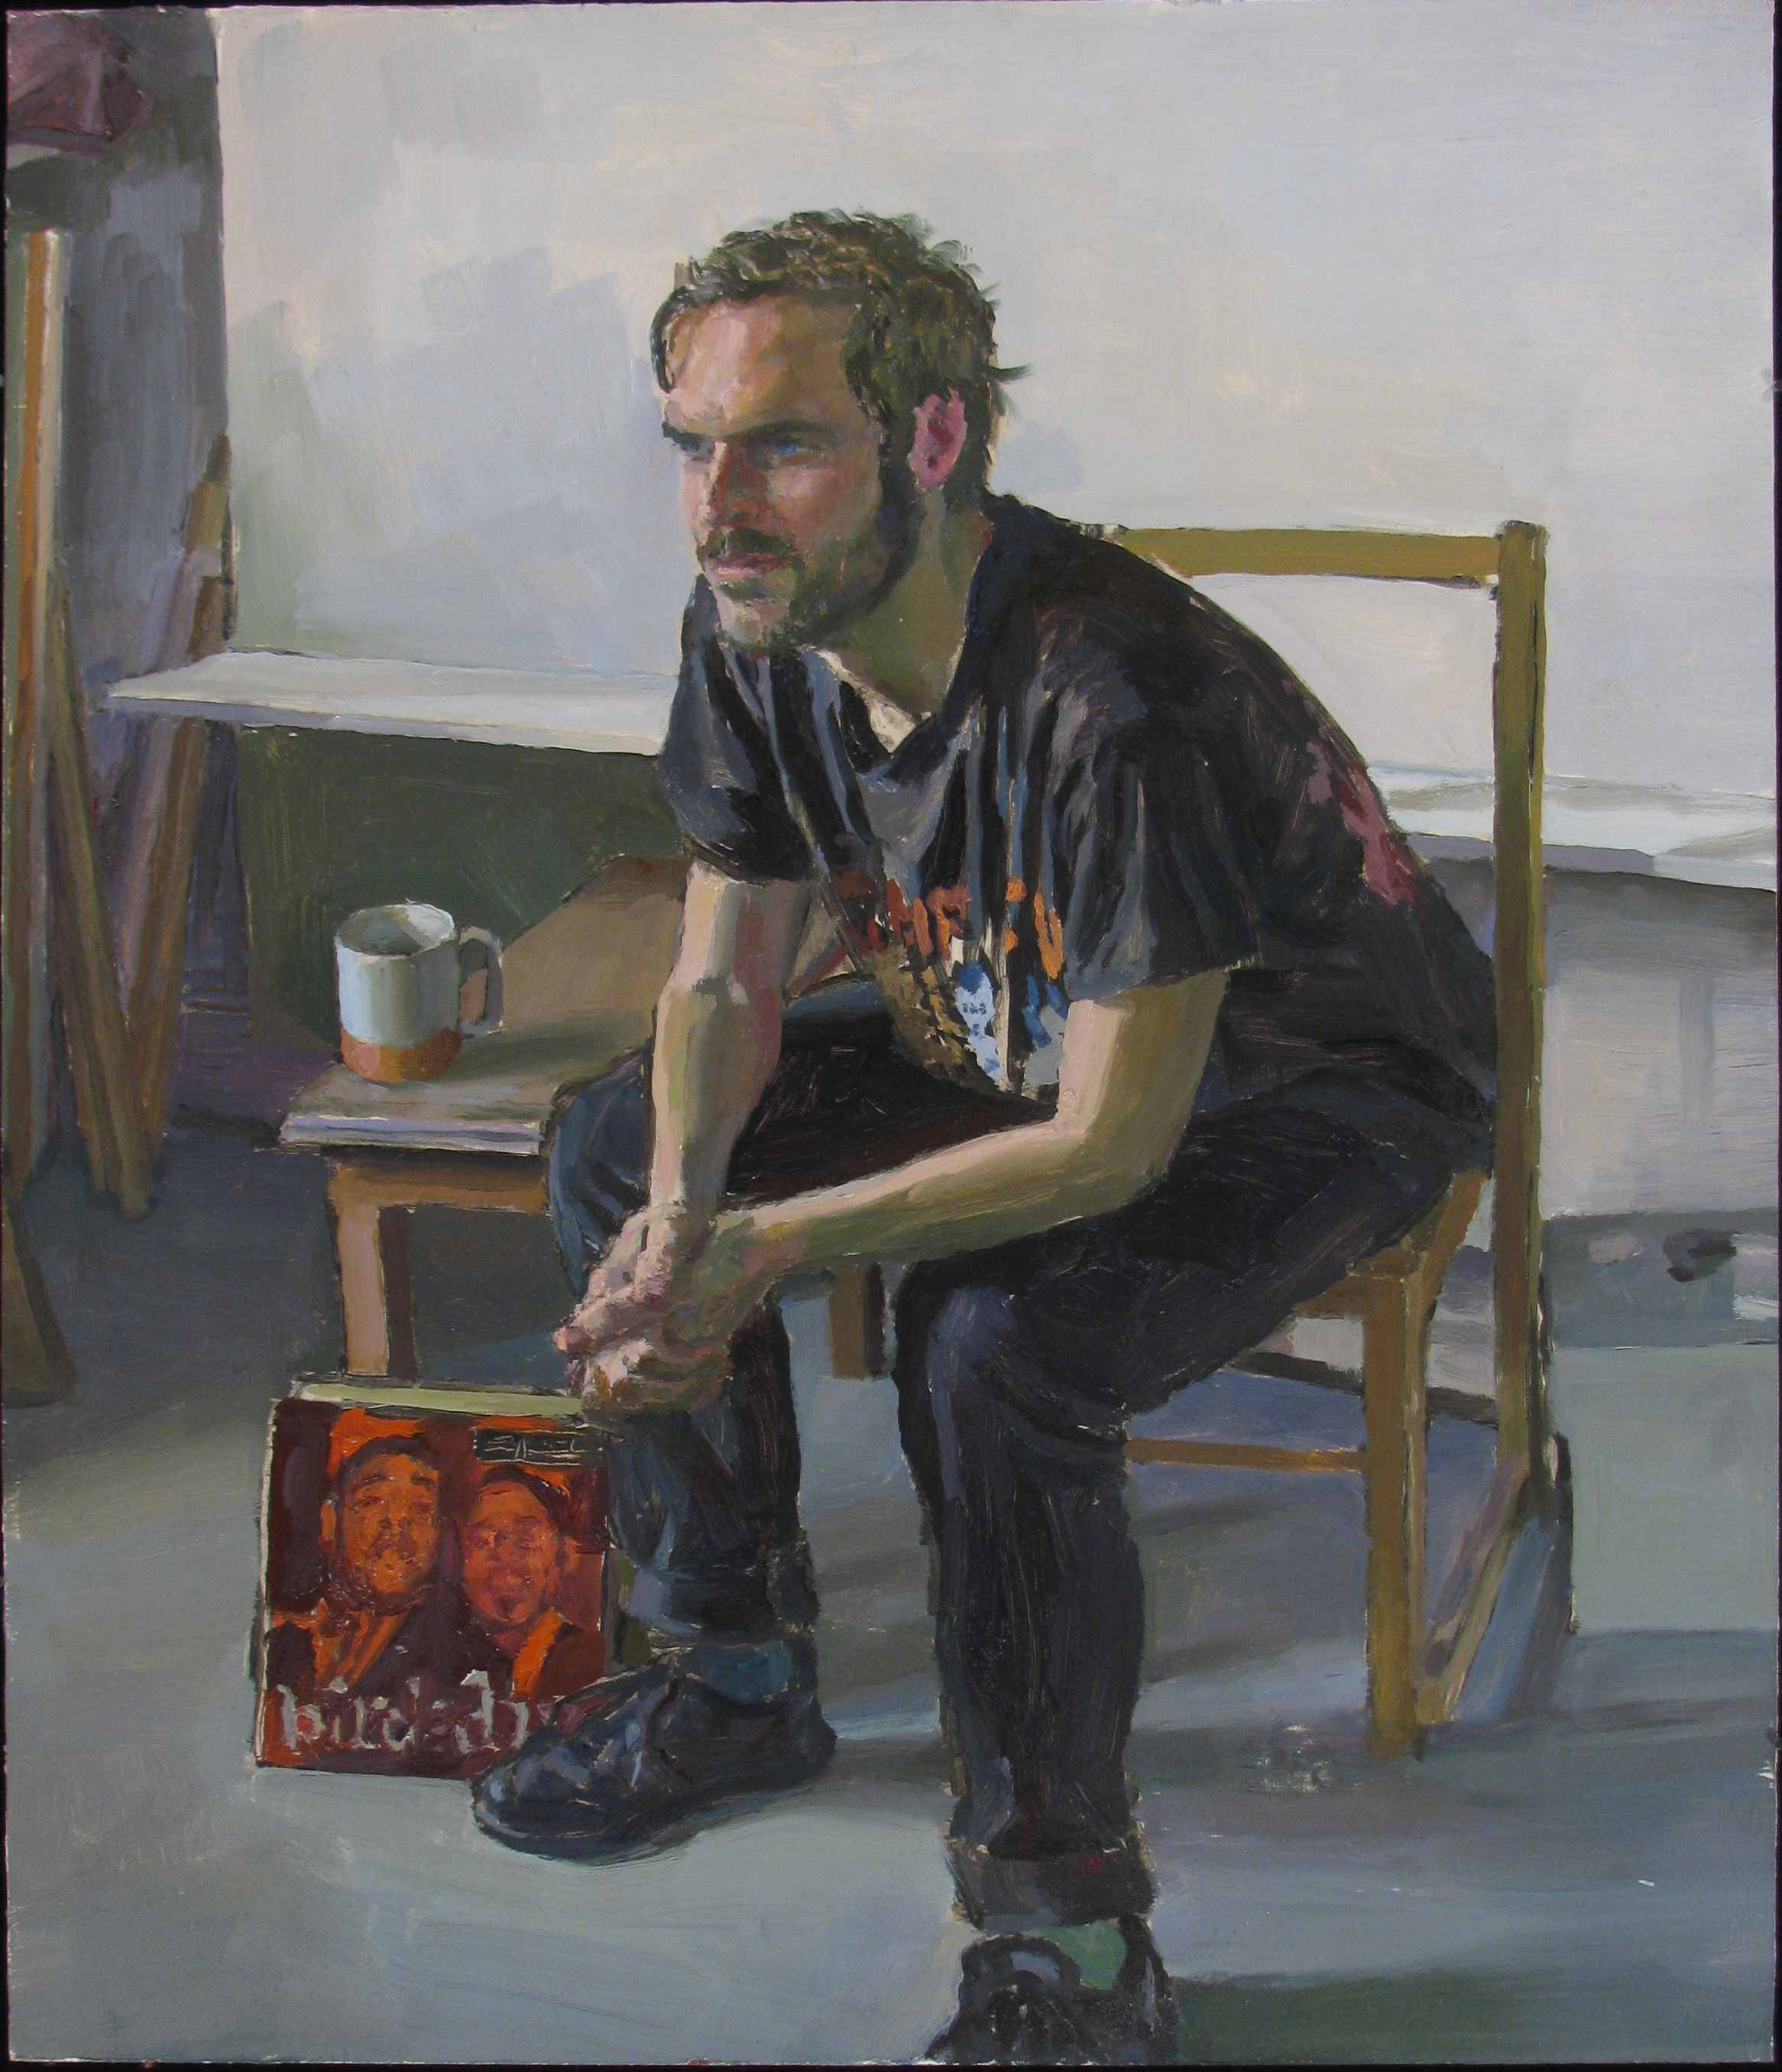 "WILLIAM BEVAN oil on panel 14 x 12"" 2011"